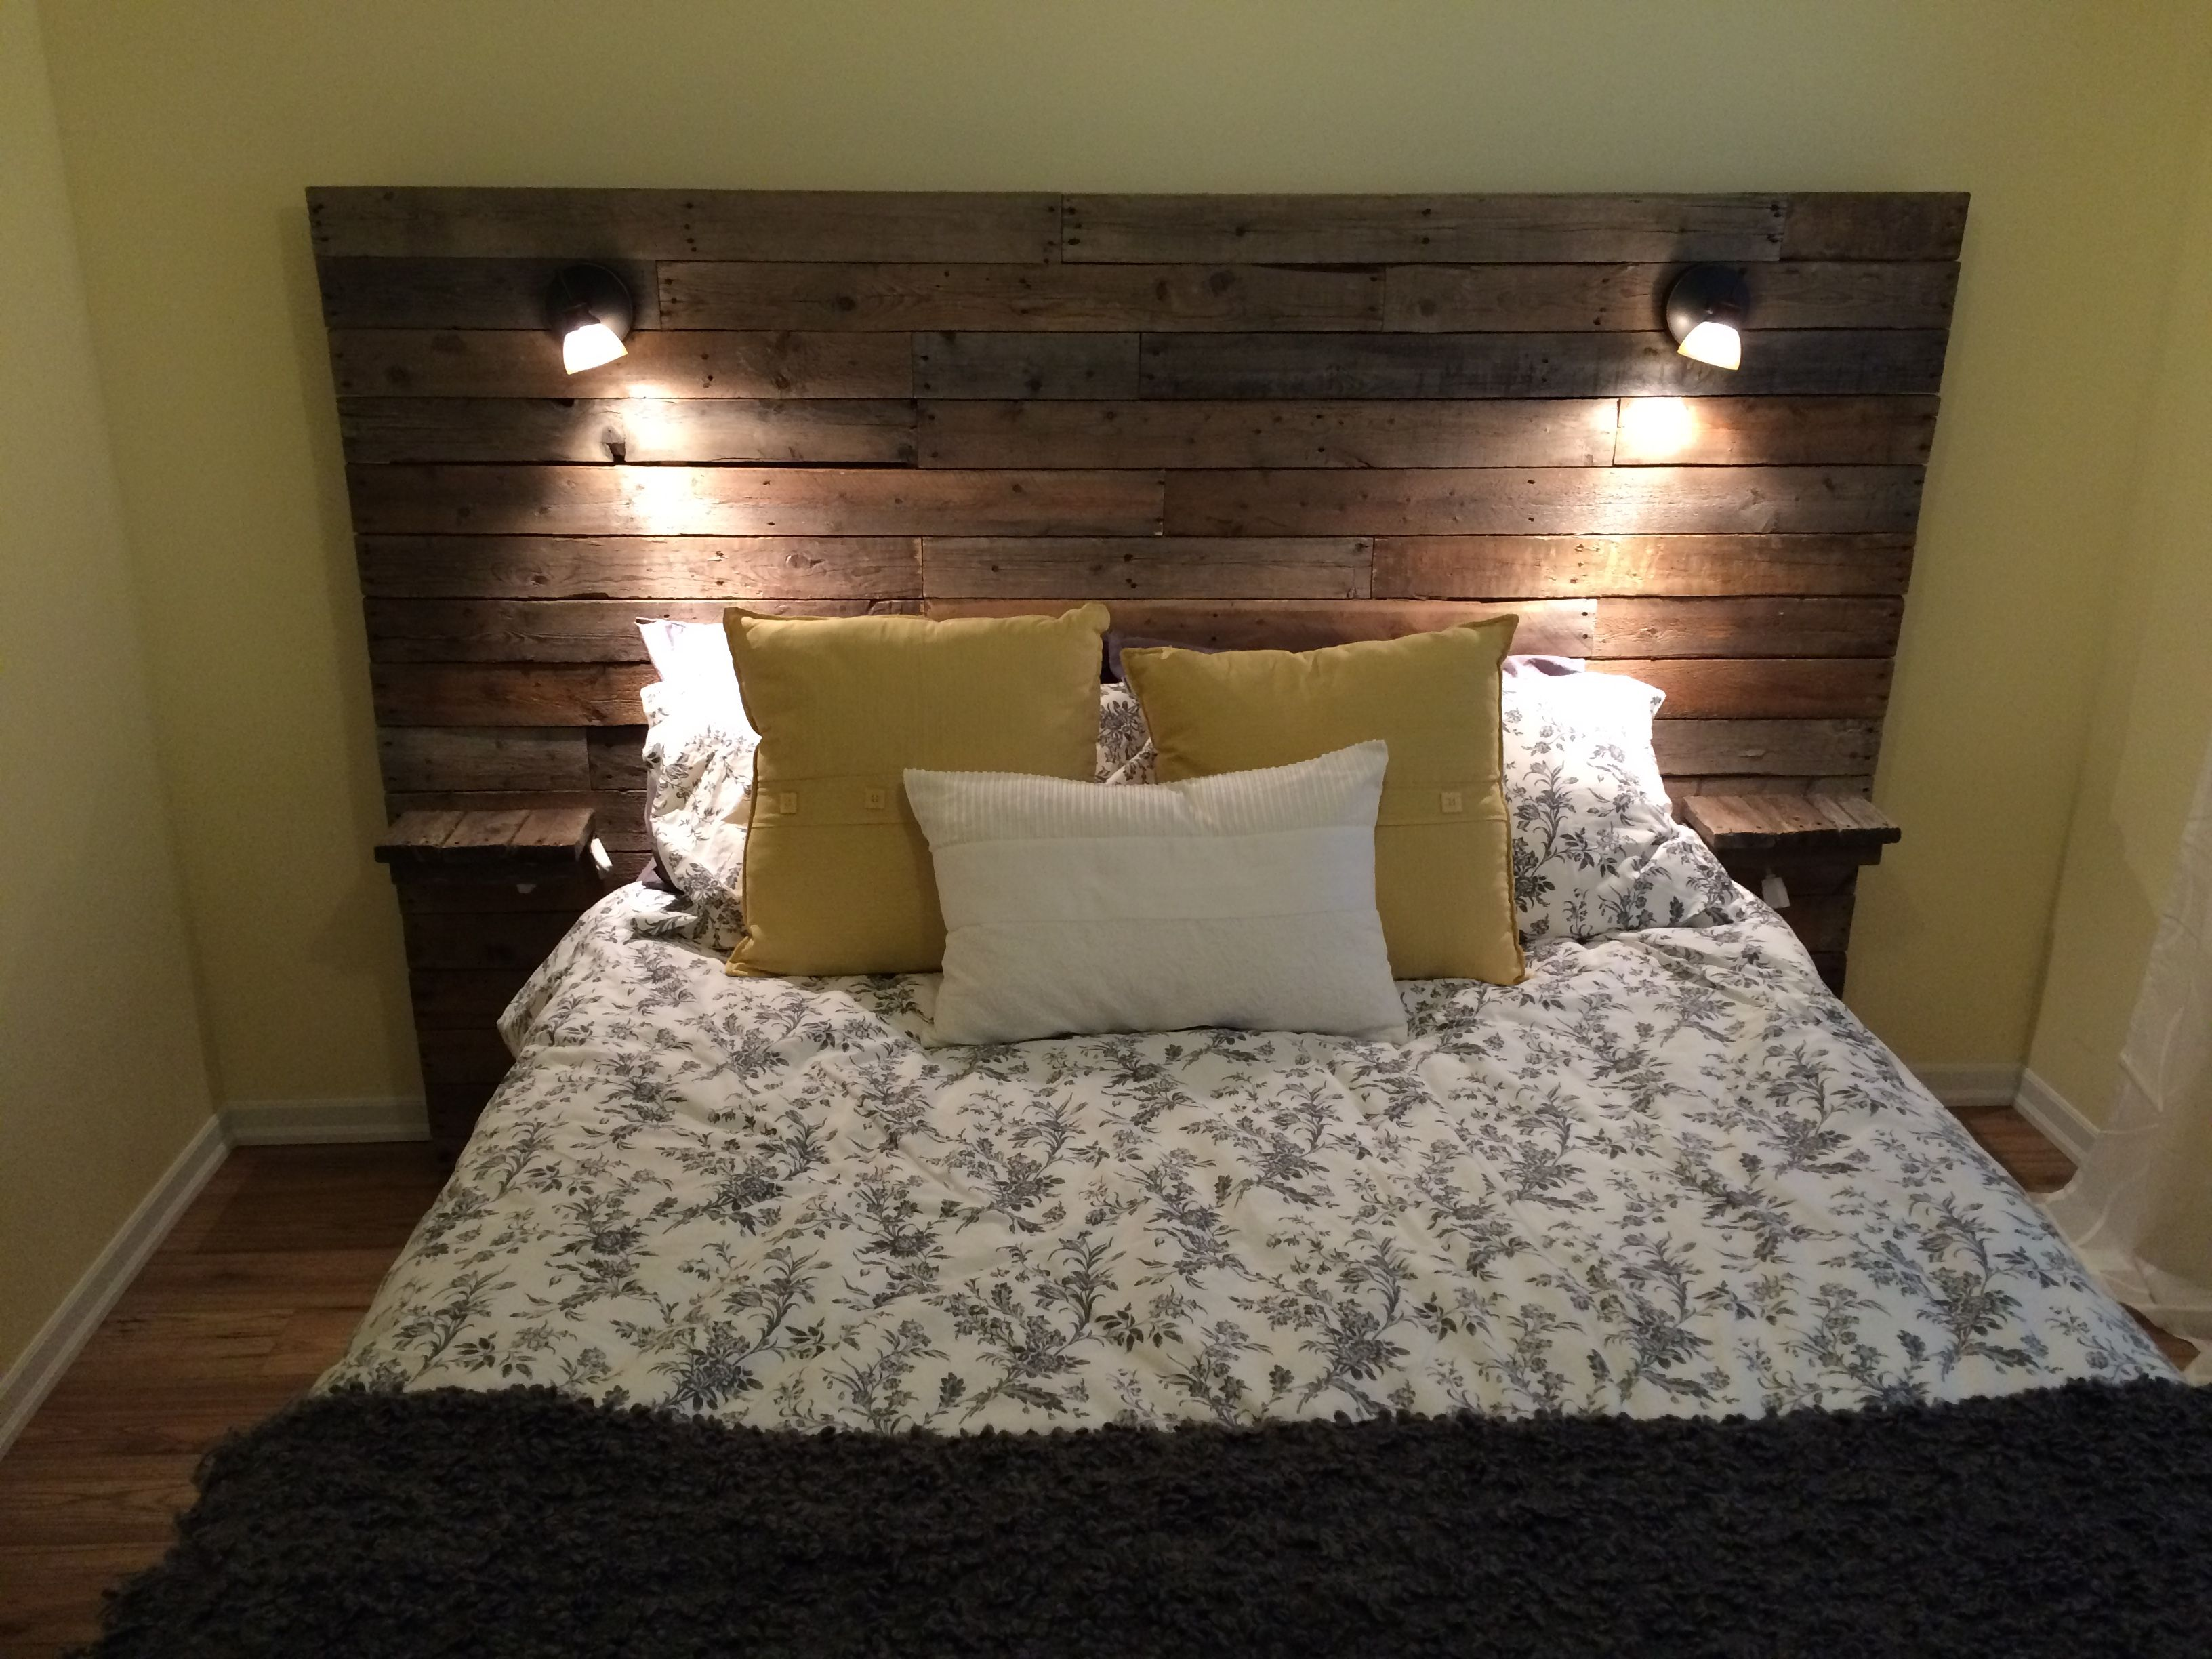 Pallet headboard with shelf lights and plugs for cell phones